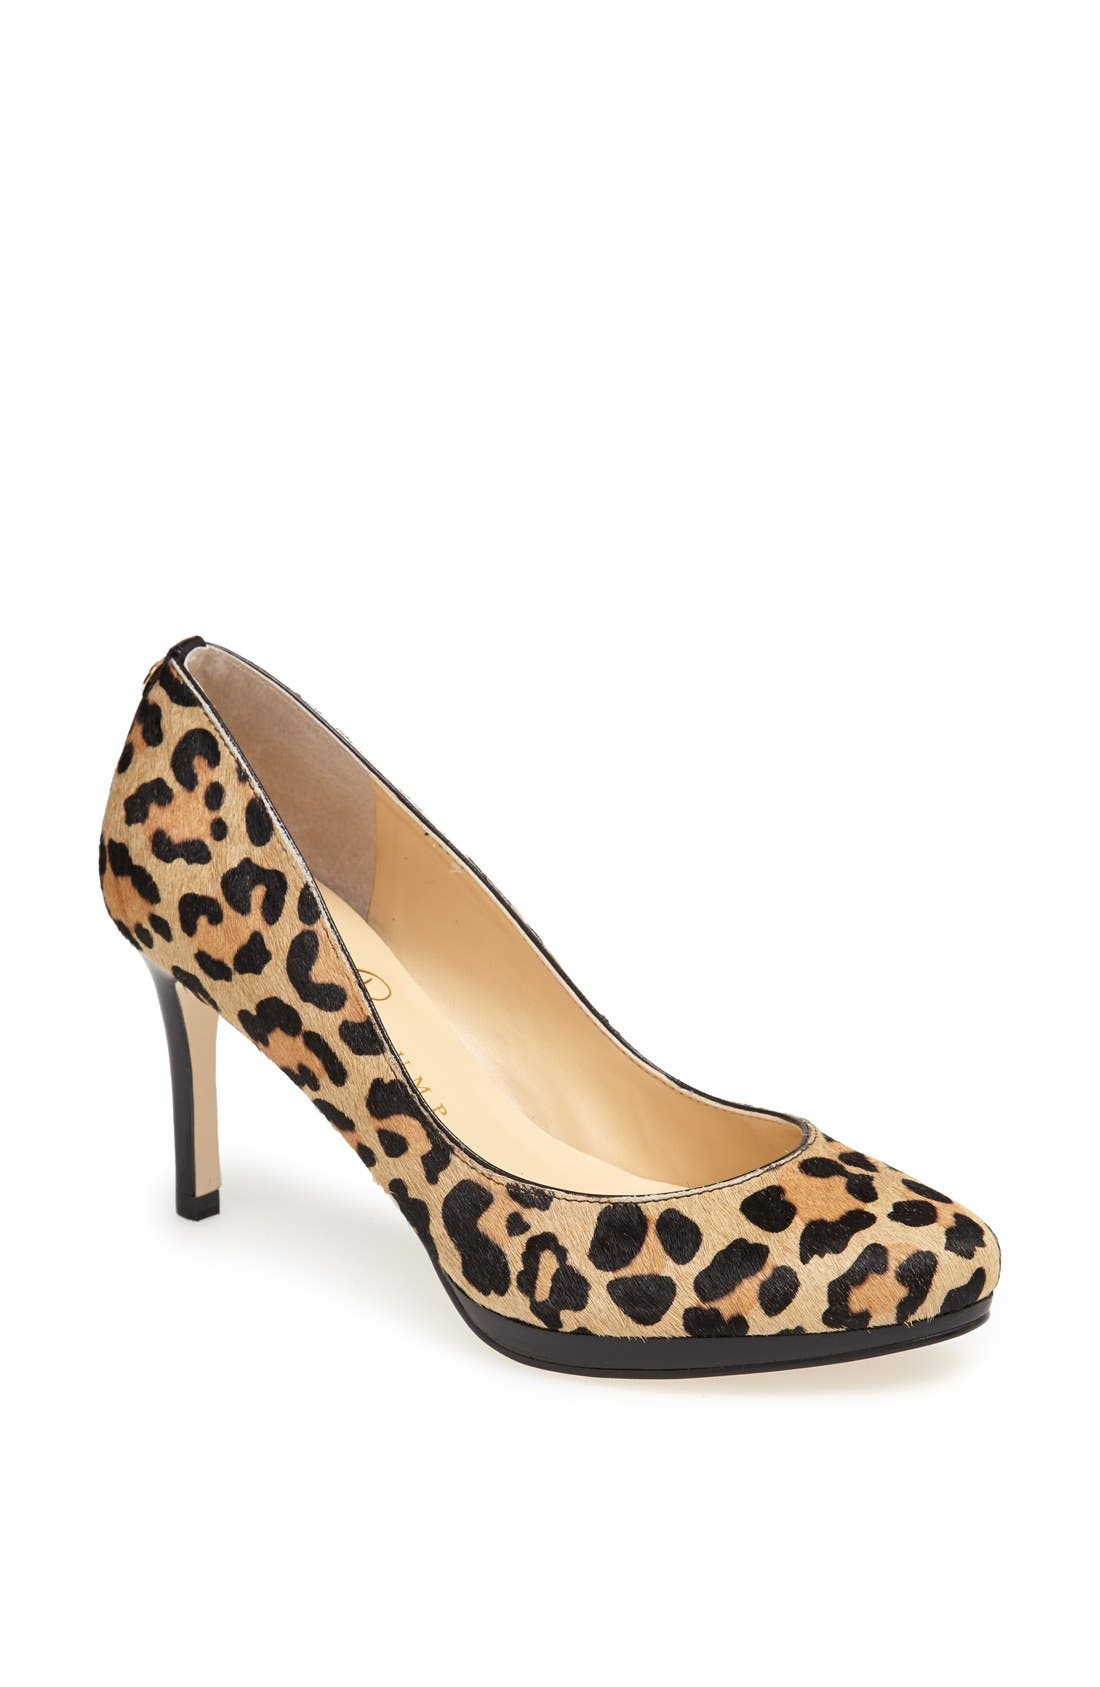 IVANKA TRUMP,                             'Sophia' Calf Hair Platform Pump,                             Main thumbnail 1, color,                             900